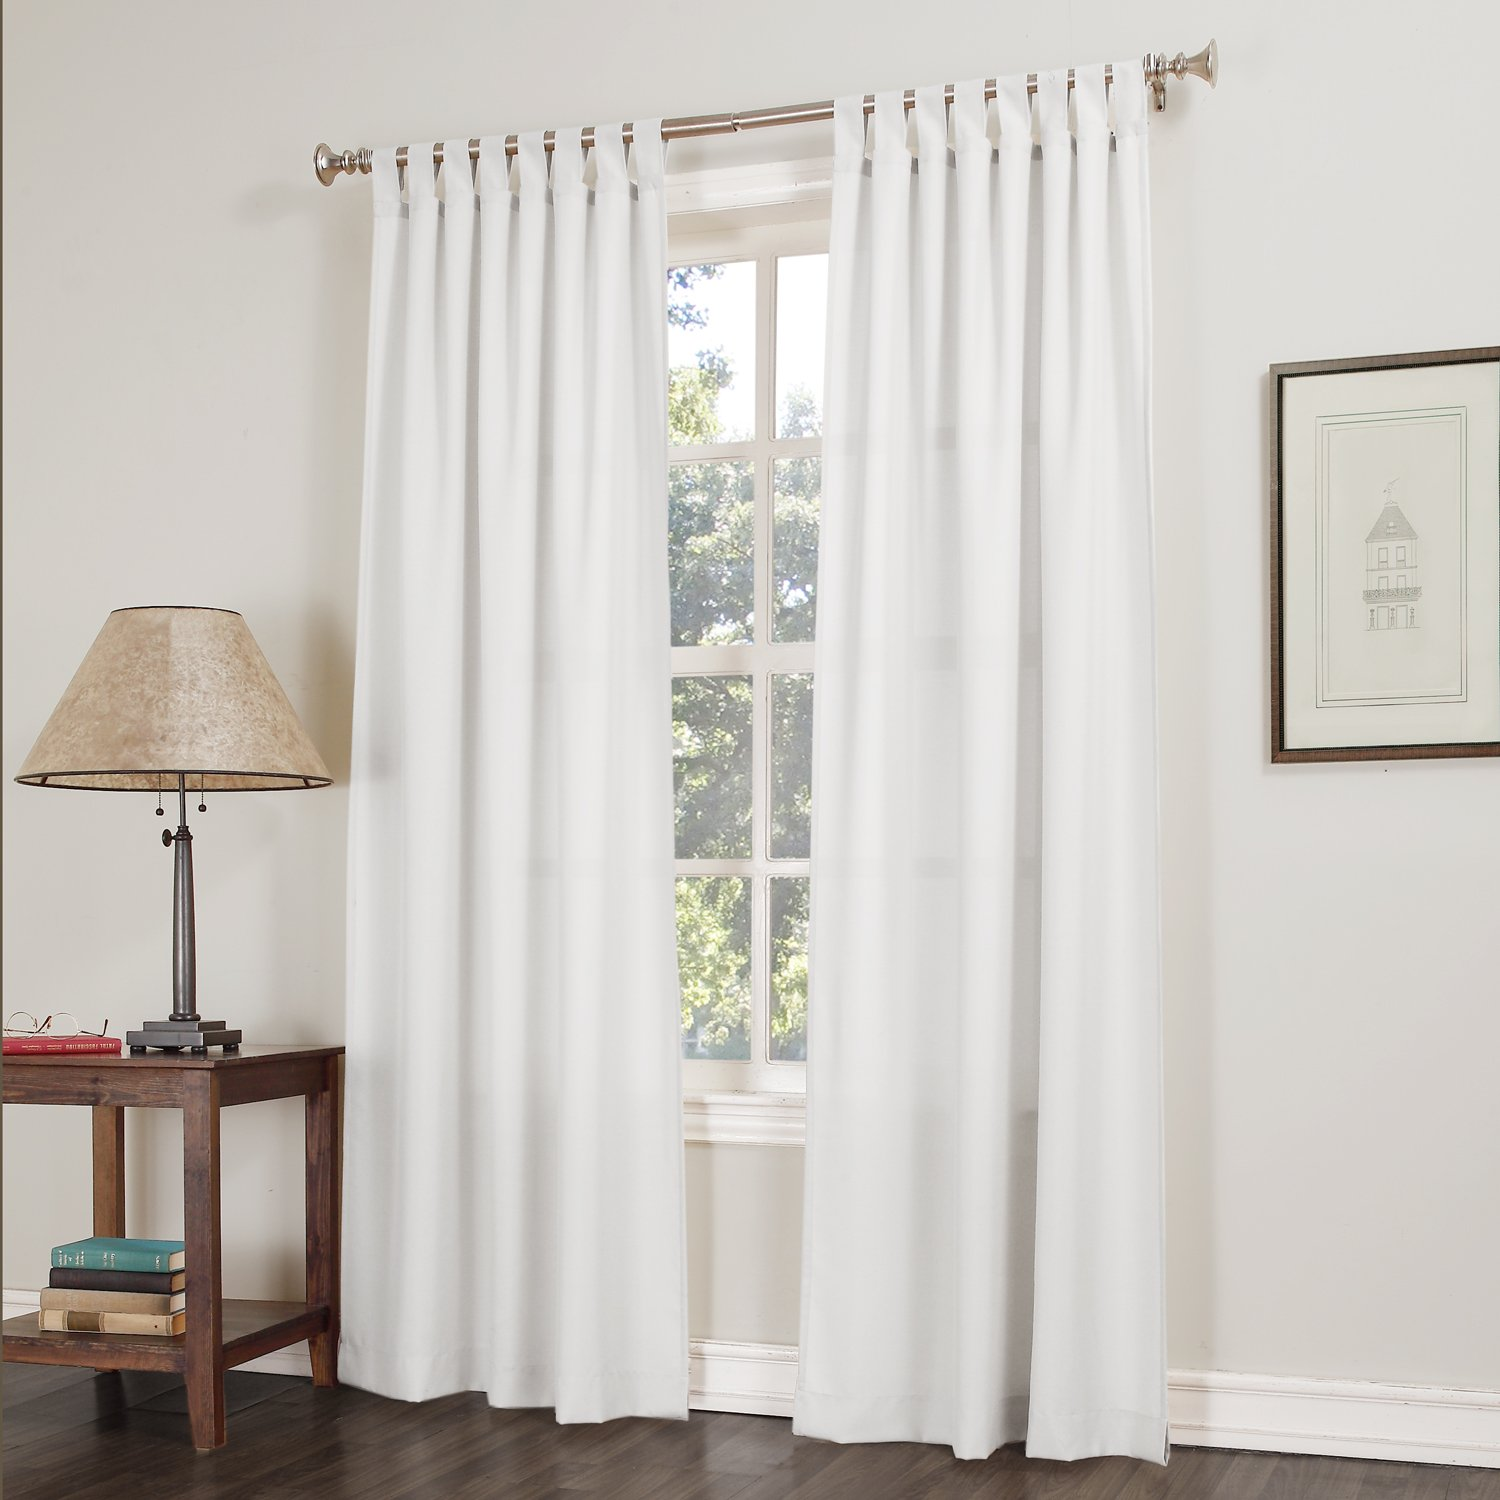 White curtain panels - 918 Trevor Semi Sheer Tab Top Curtain Panel 40 X 84 White Home Kitchen